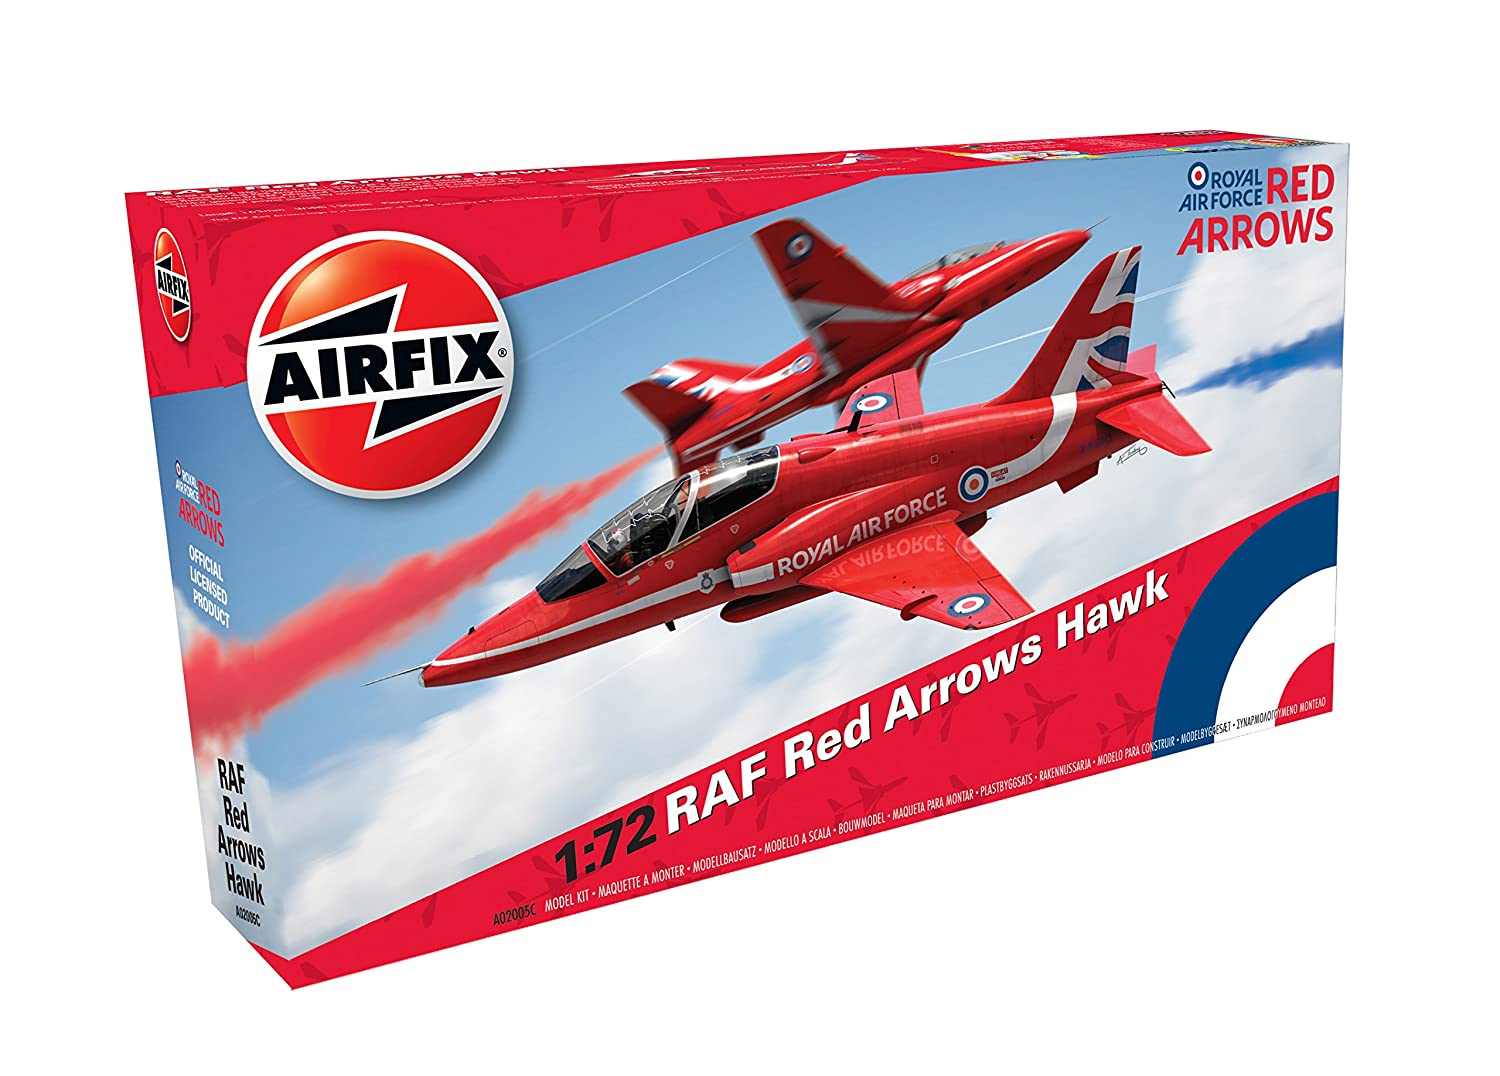 Airfix A02005C RAF Red Arrows Hawk Military Plastic Model Kit (1:72 Scale)